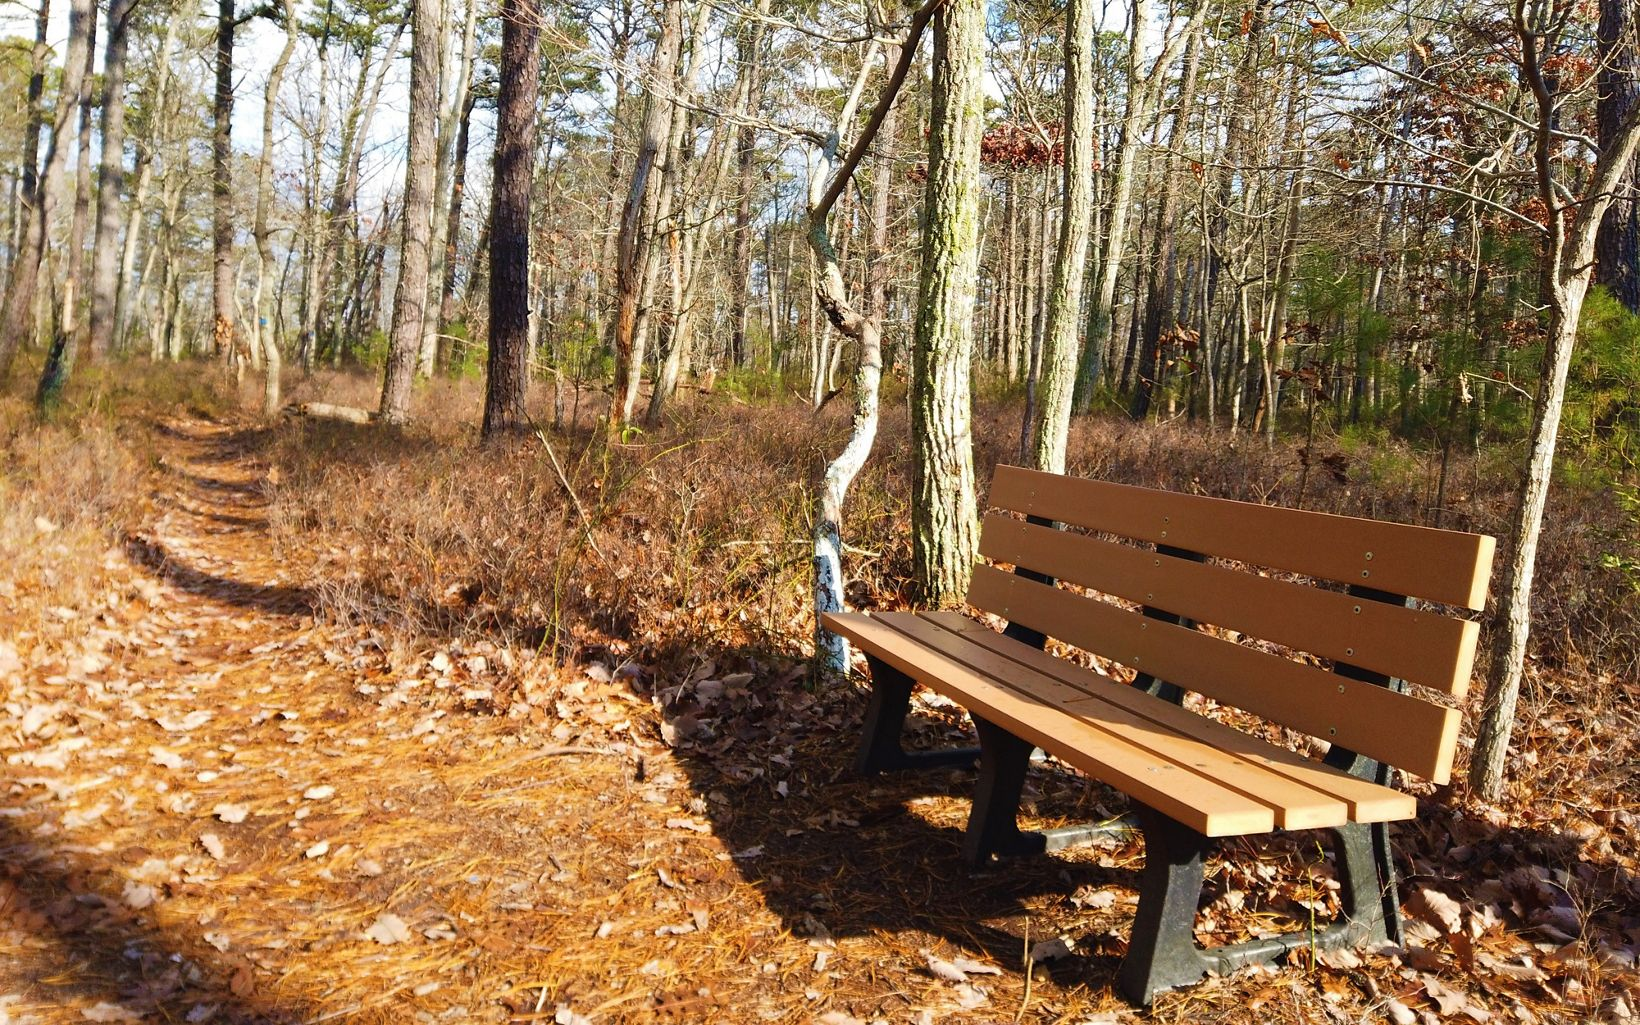 A bench along a trail through the woods.